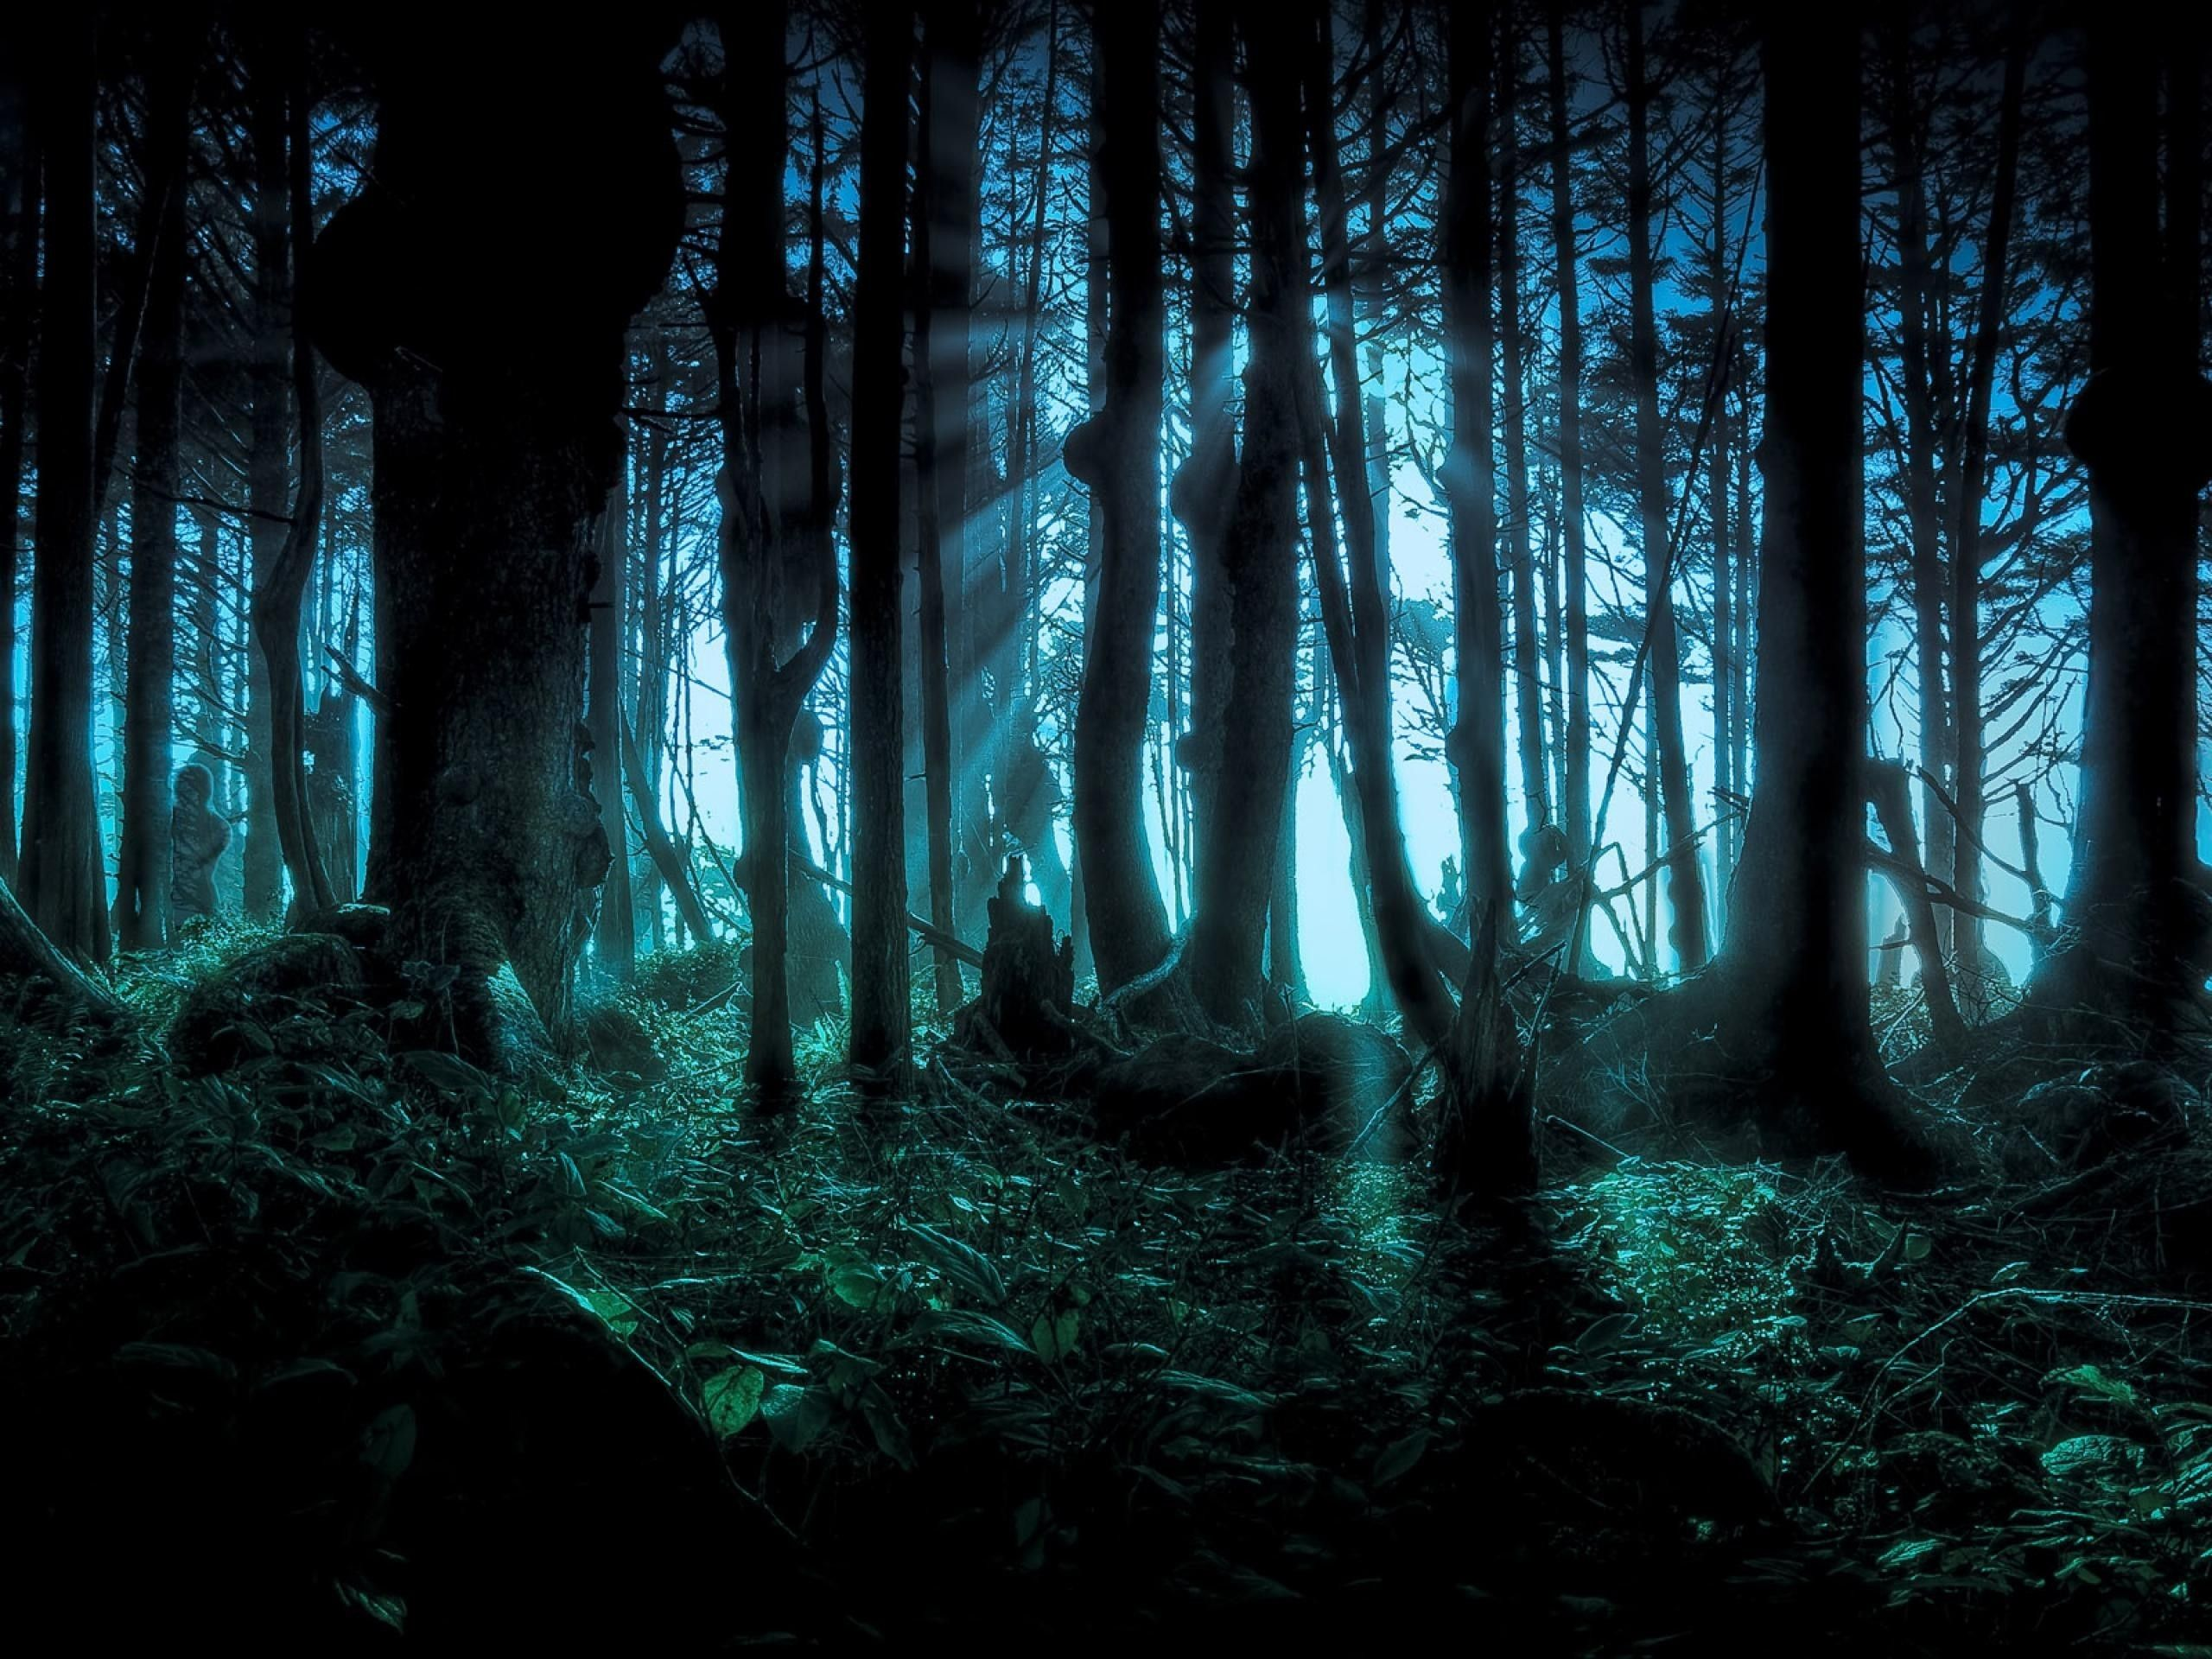 Spooky Halloween Backgrounds 55 Images Halloween Backgrounds Forest Wallpaper Background